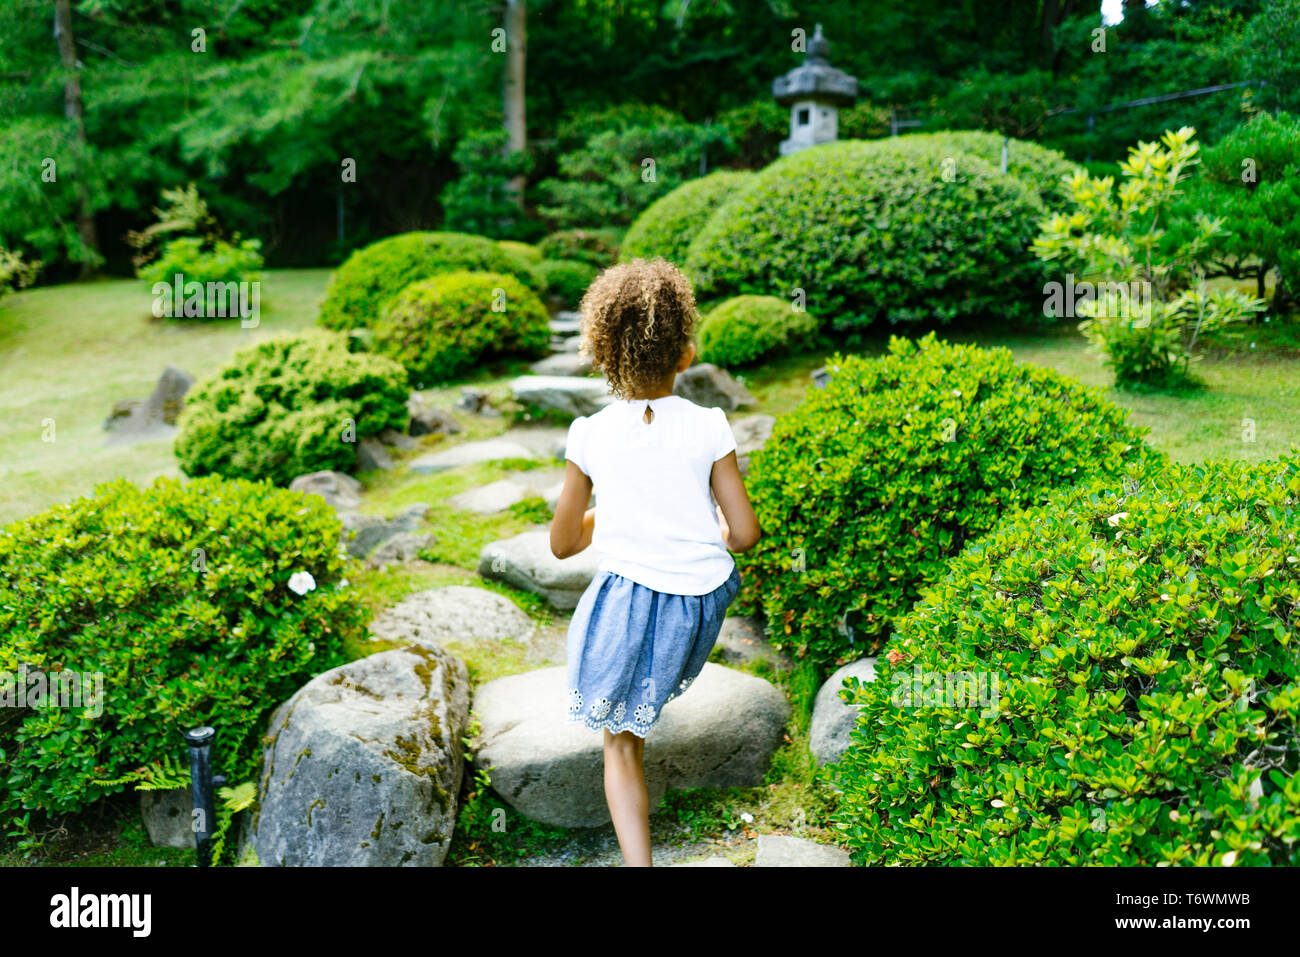 Rear view of a young girl walking down a path in a public park - Stock Image